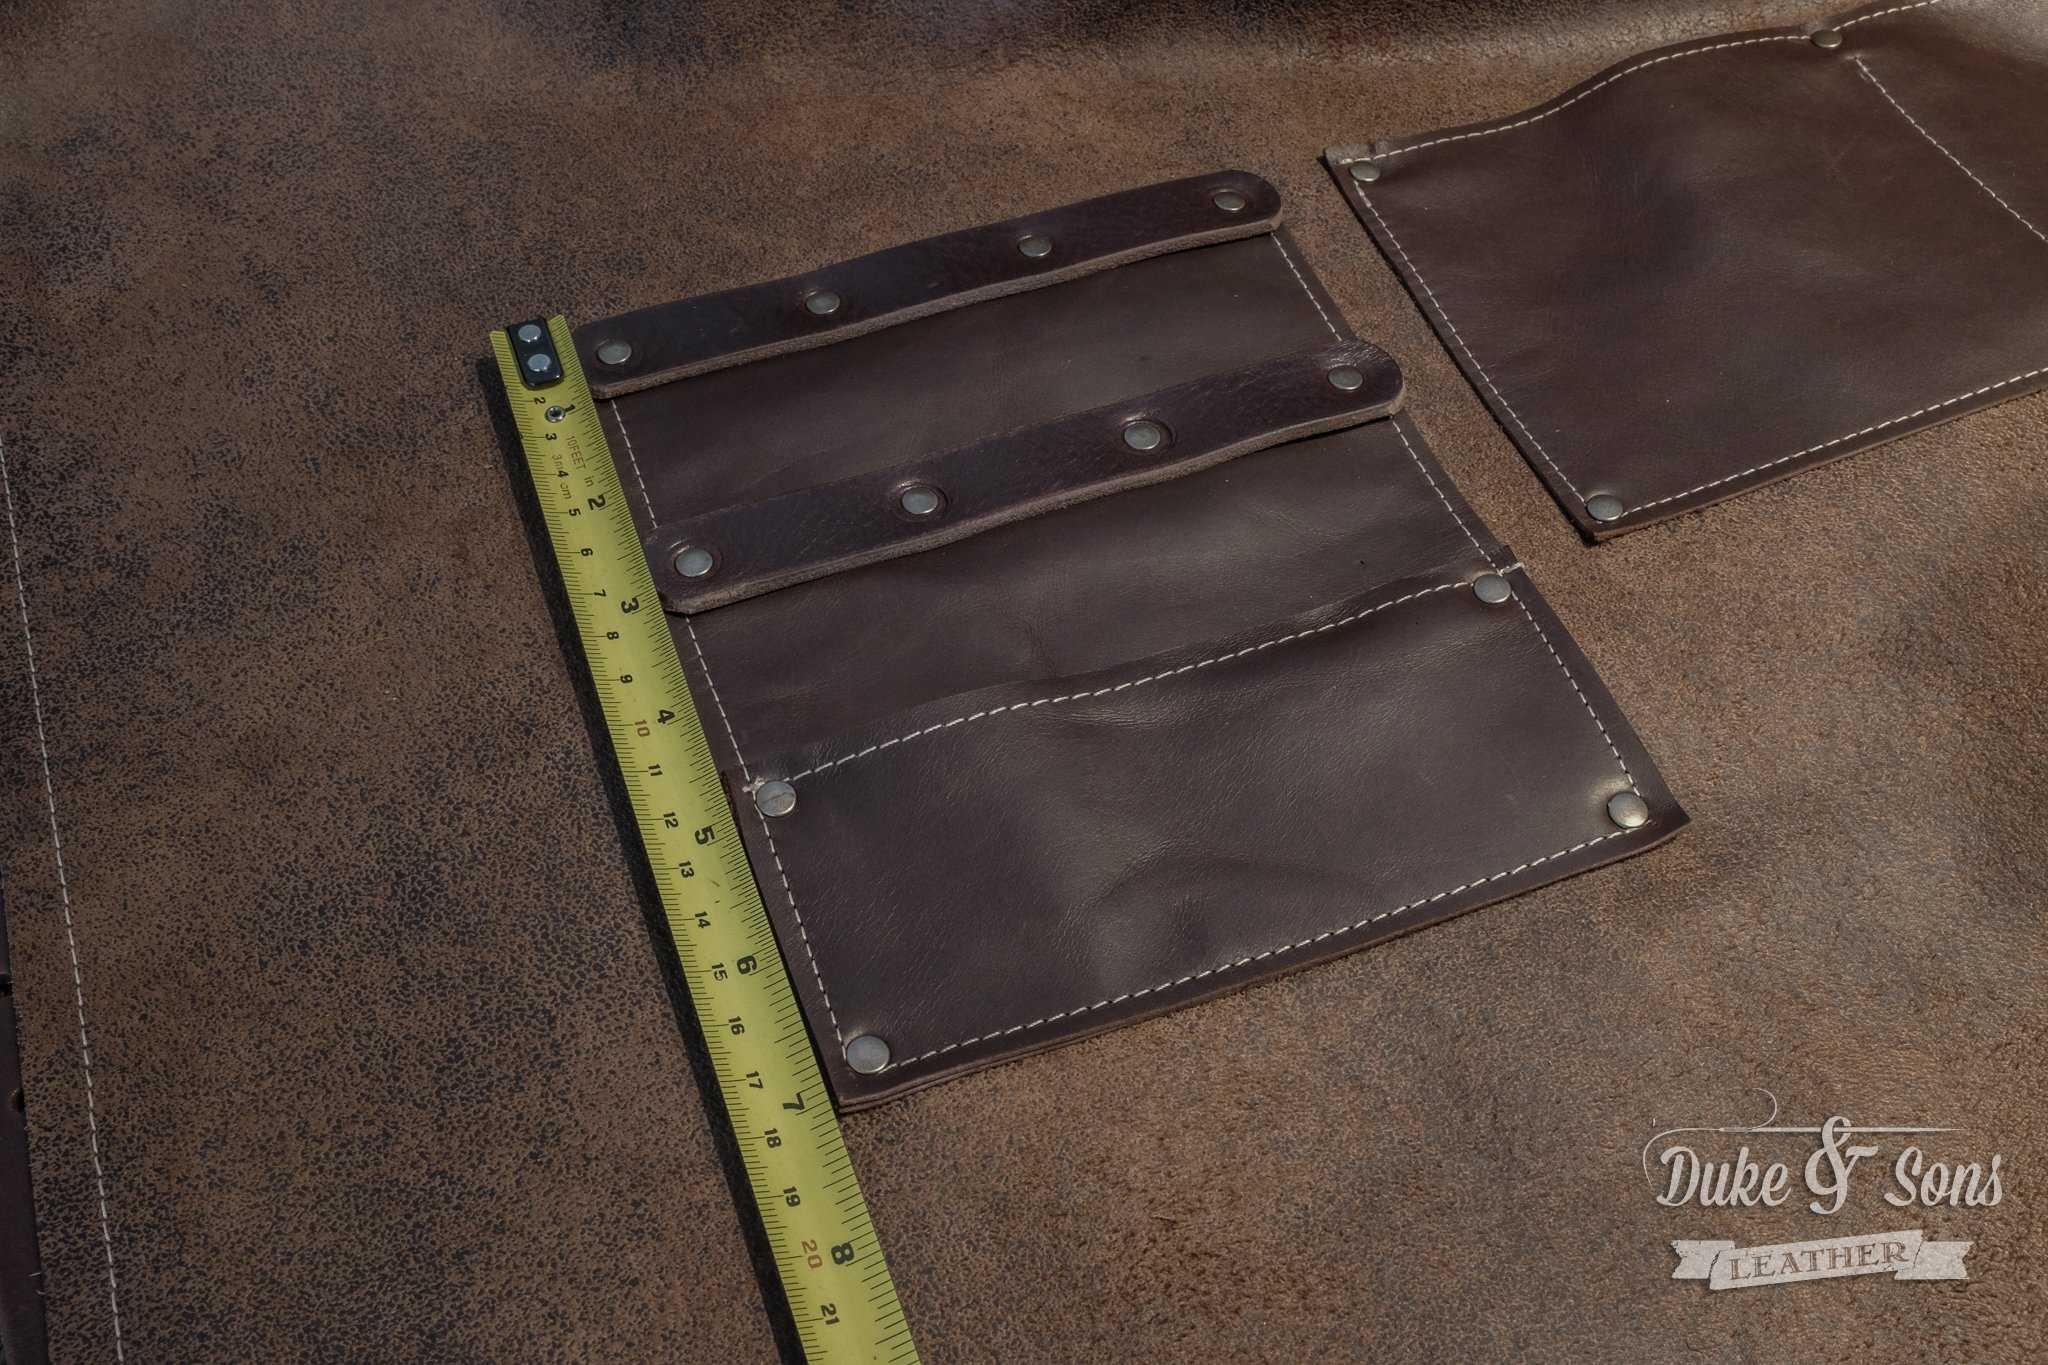 Barber apron, brown leather with pockets for shears and combs.